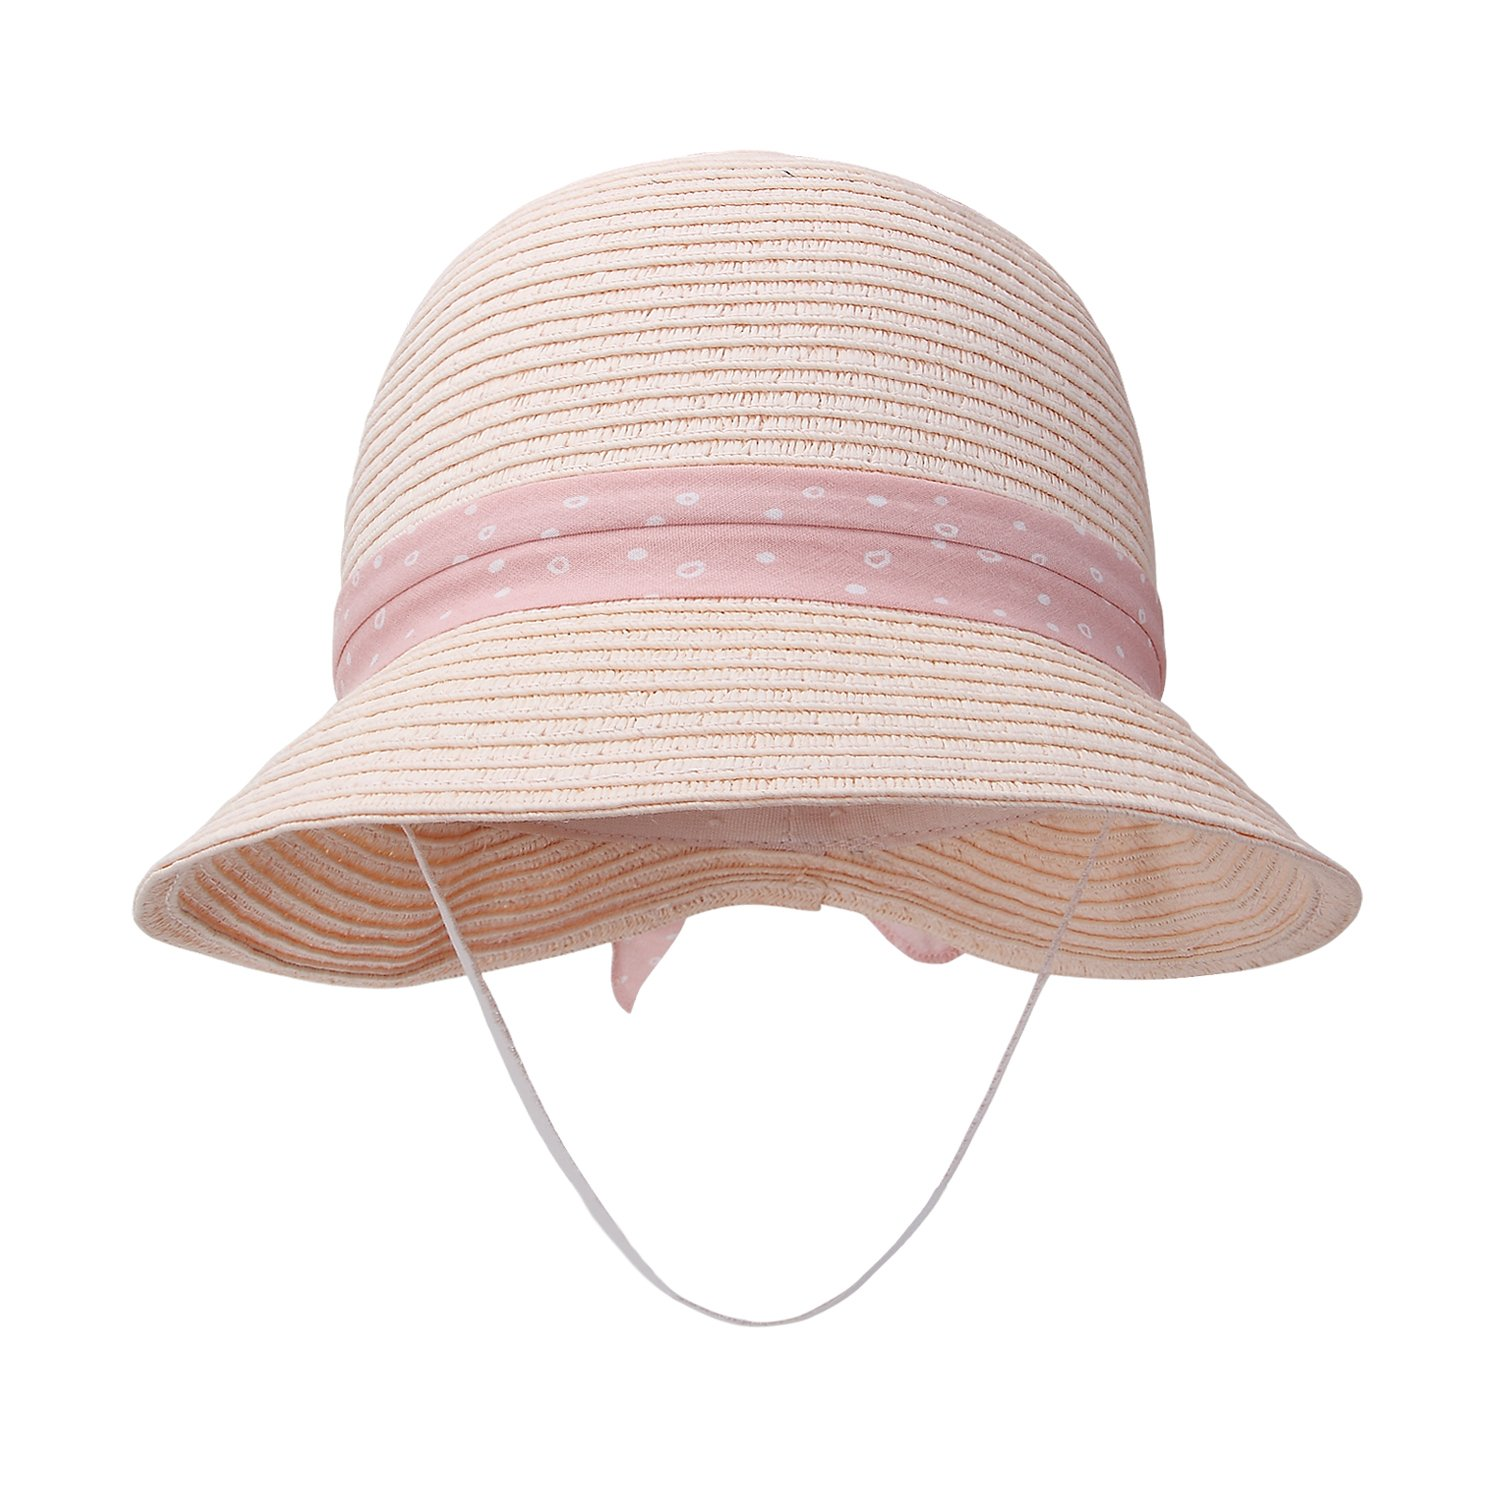 Baby Girl Straw Hats Toddler Girl Summer Hats Baby Sun Hats 0-6years Old (48cm(18.8in Head Circumference), Pink)